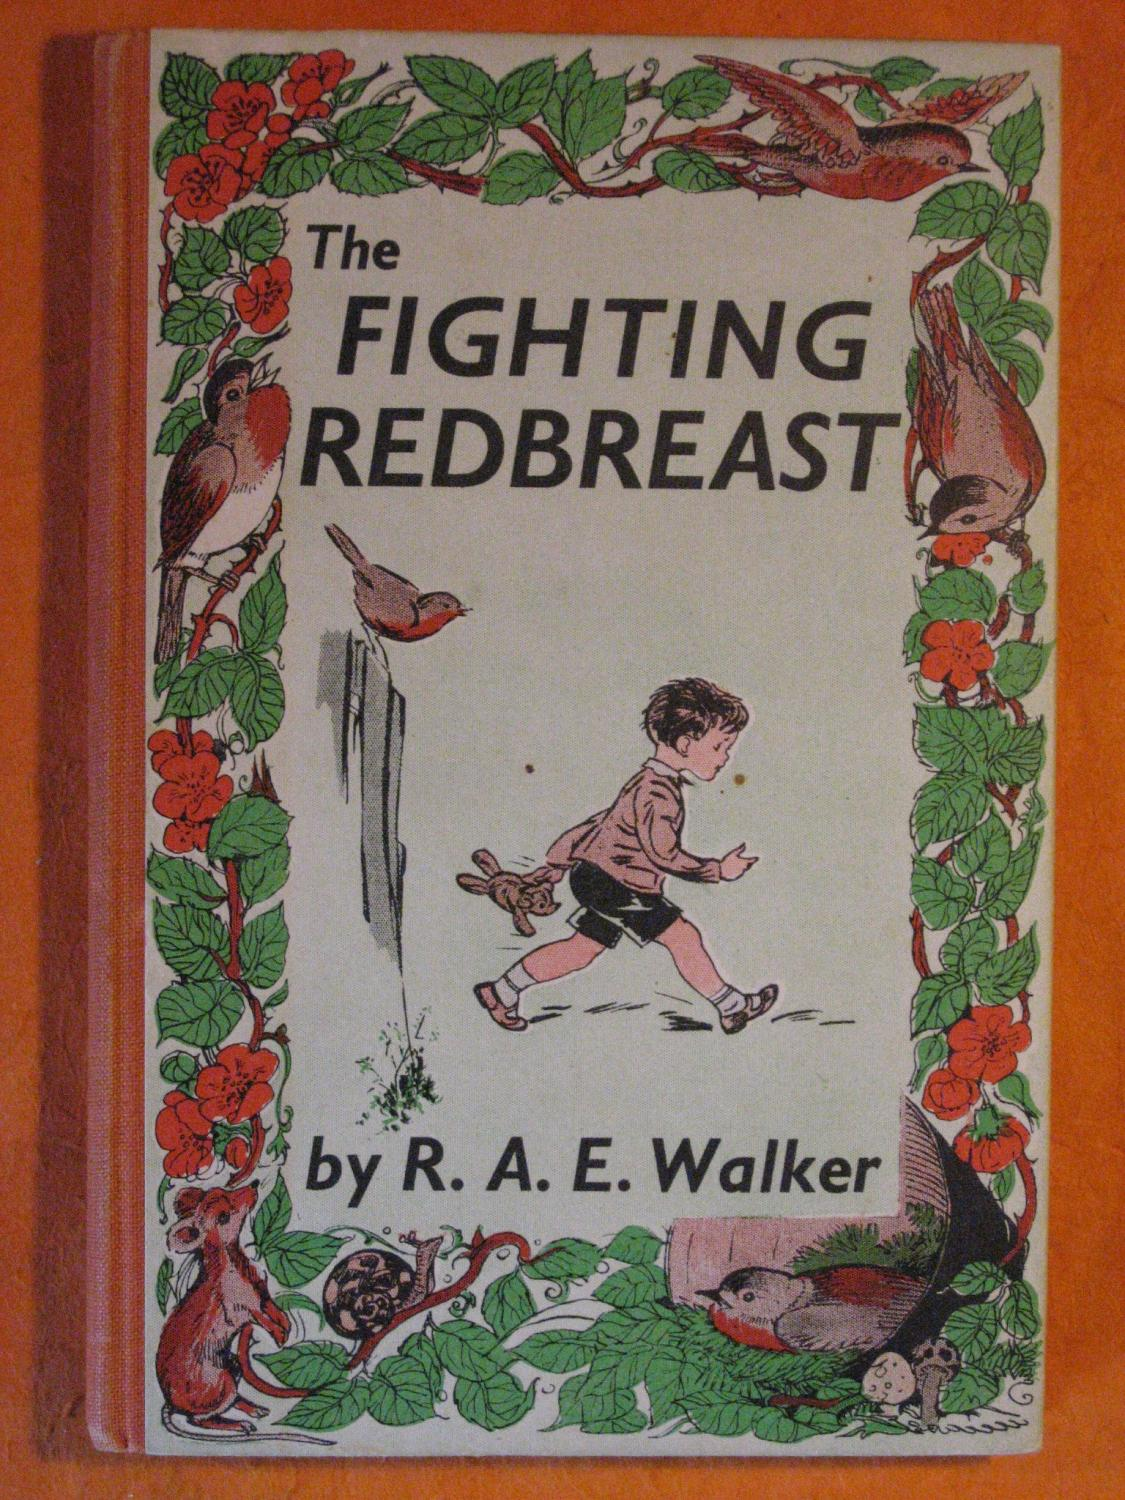 The Fighting Redbreast Walker, R.A.E. [Good] [Hardcover] (bi_22574616038) photo